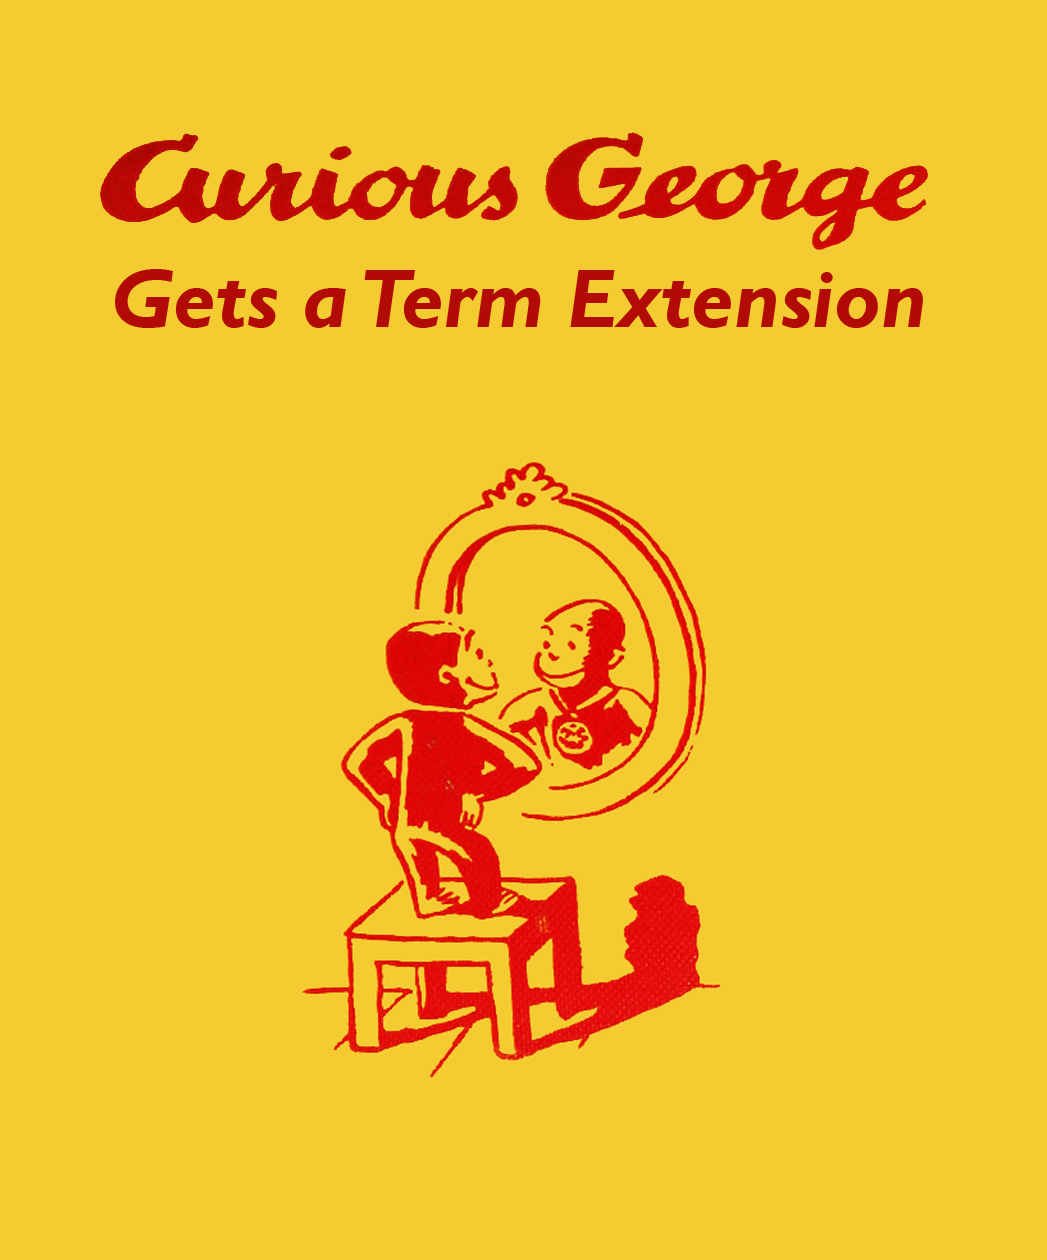 Curious George Gets a Term Extension